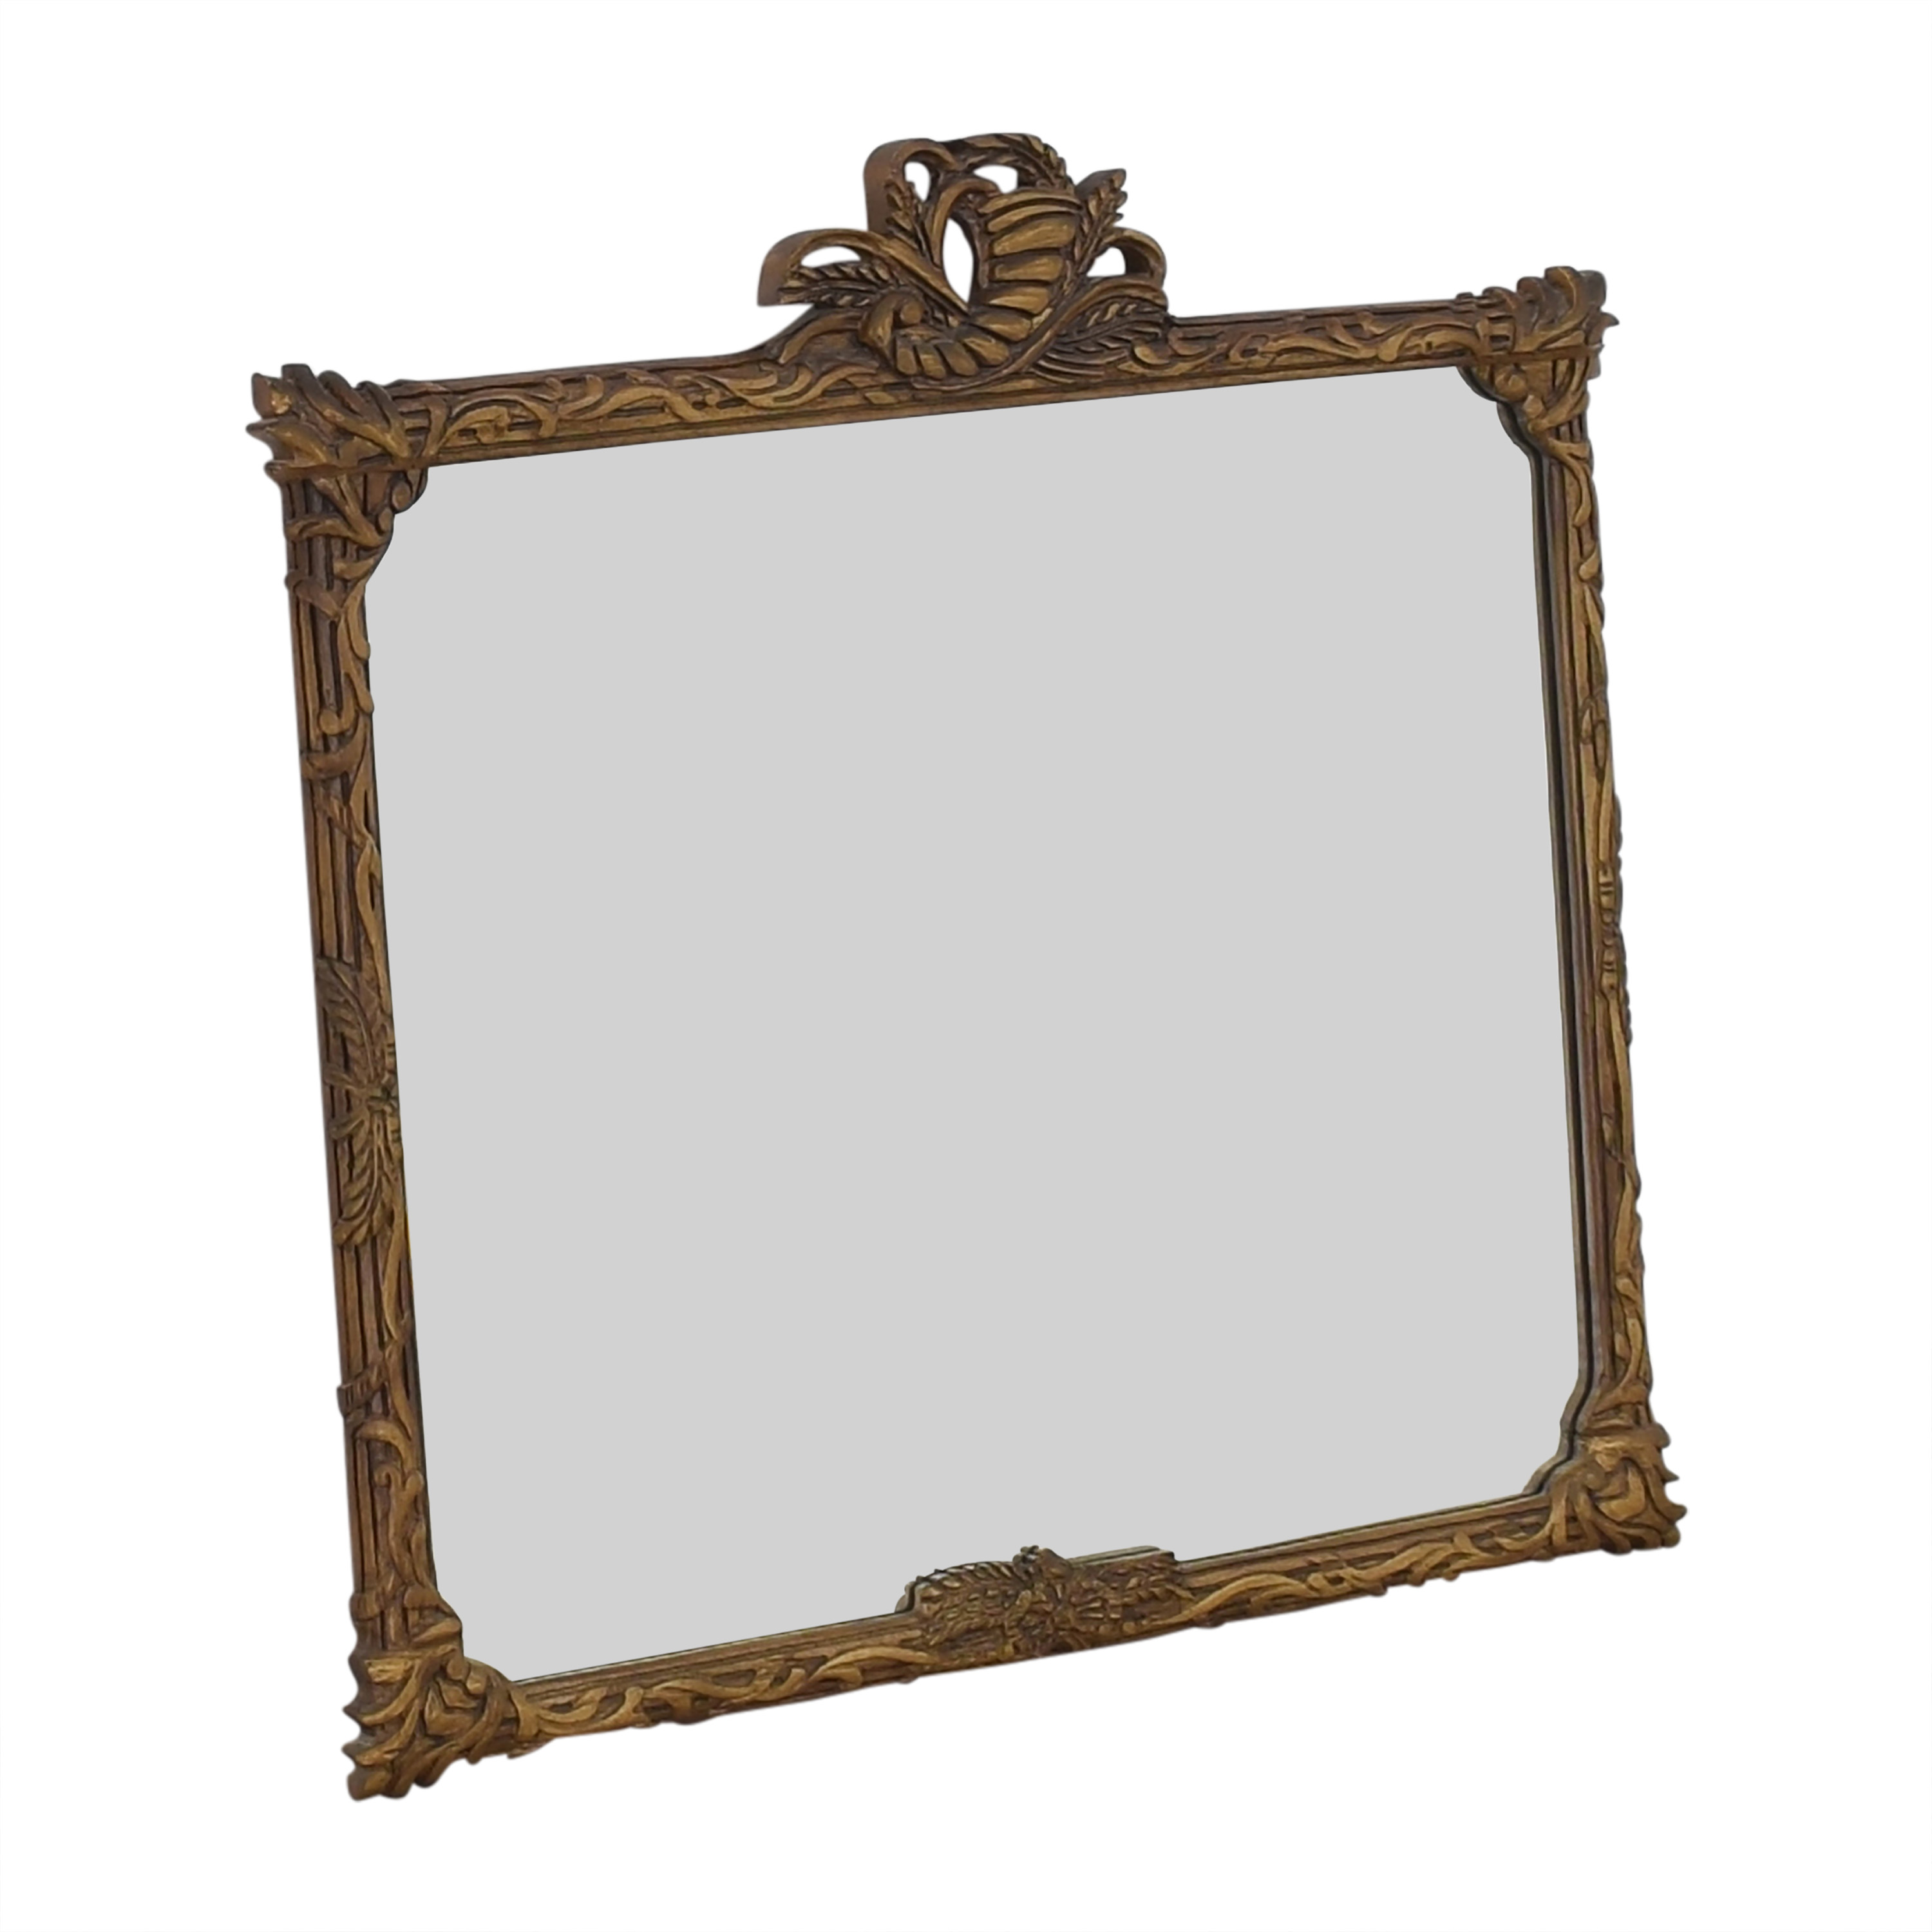 Wall Mirror with Carved Frame used